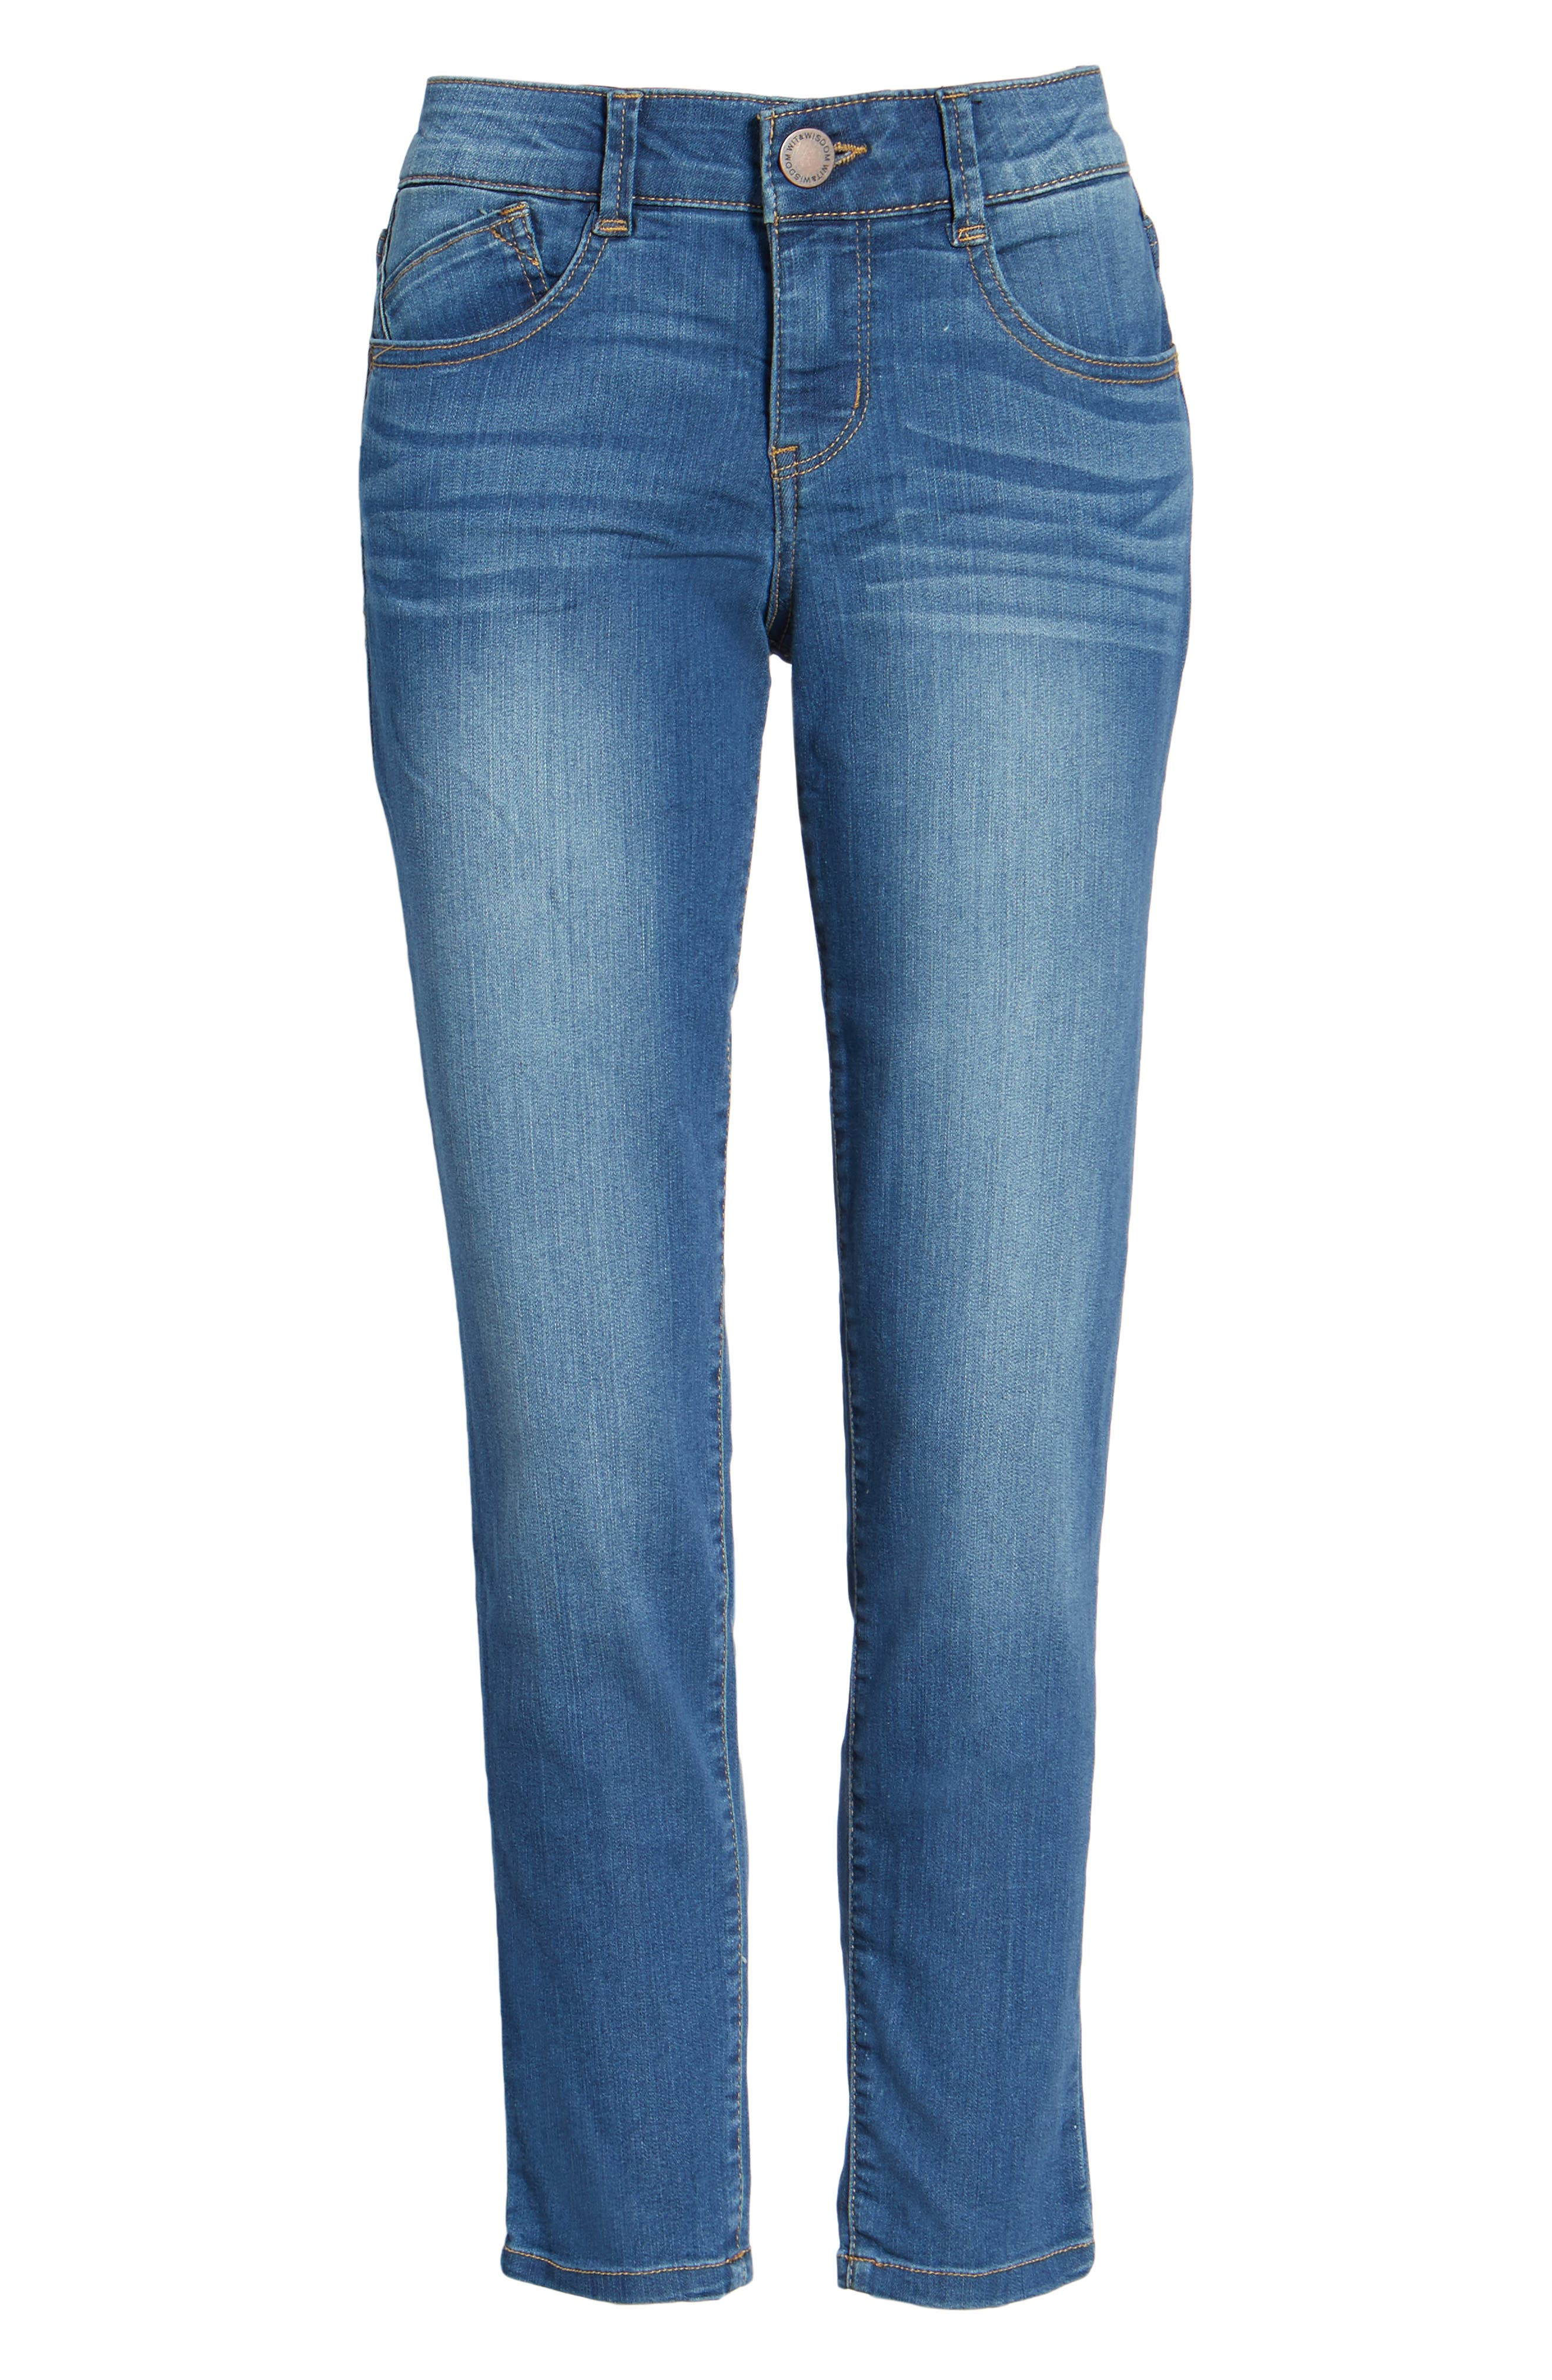 'Ab-solution' Stretch Ankle Skinny Jeans,                         Main,                         color, 421